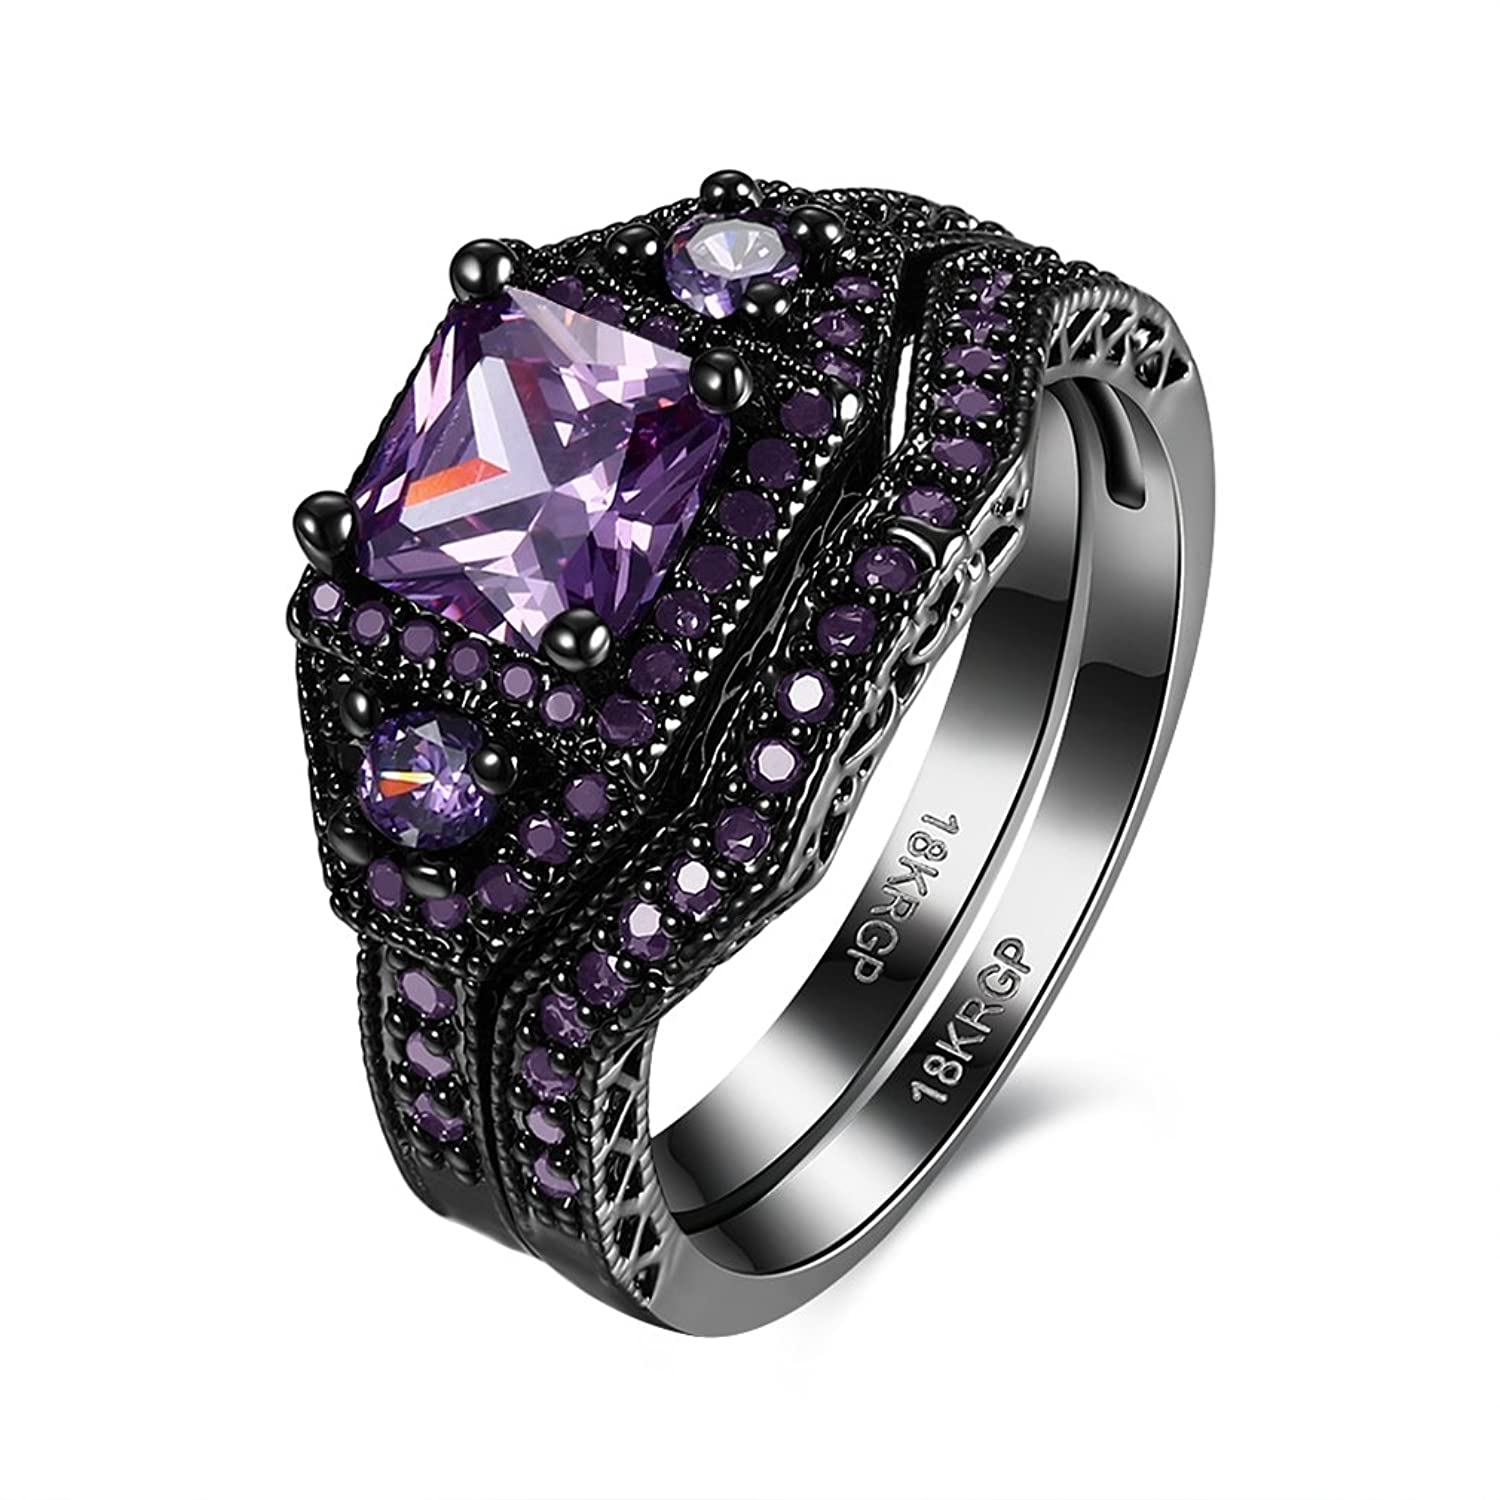 j org z diamond ring platinum octagon engagement id rings for purple sapphire at d sale jewelry